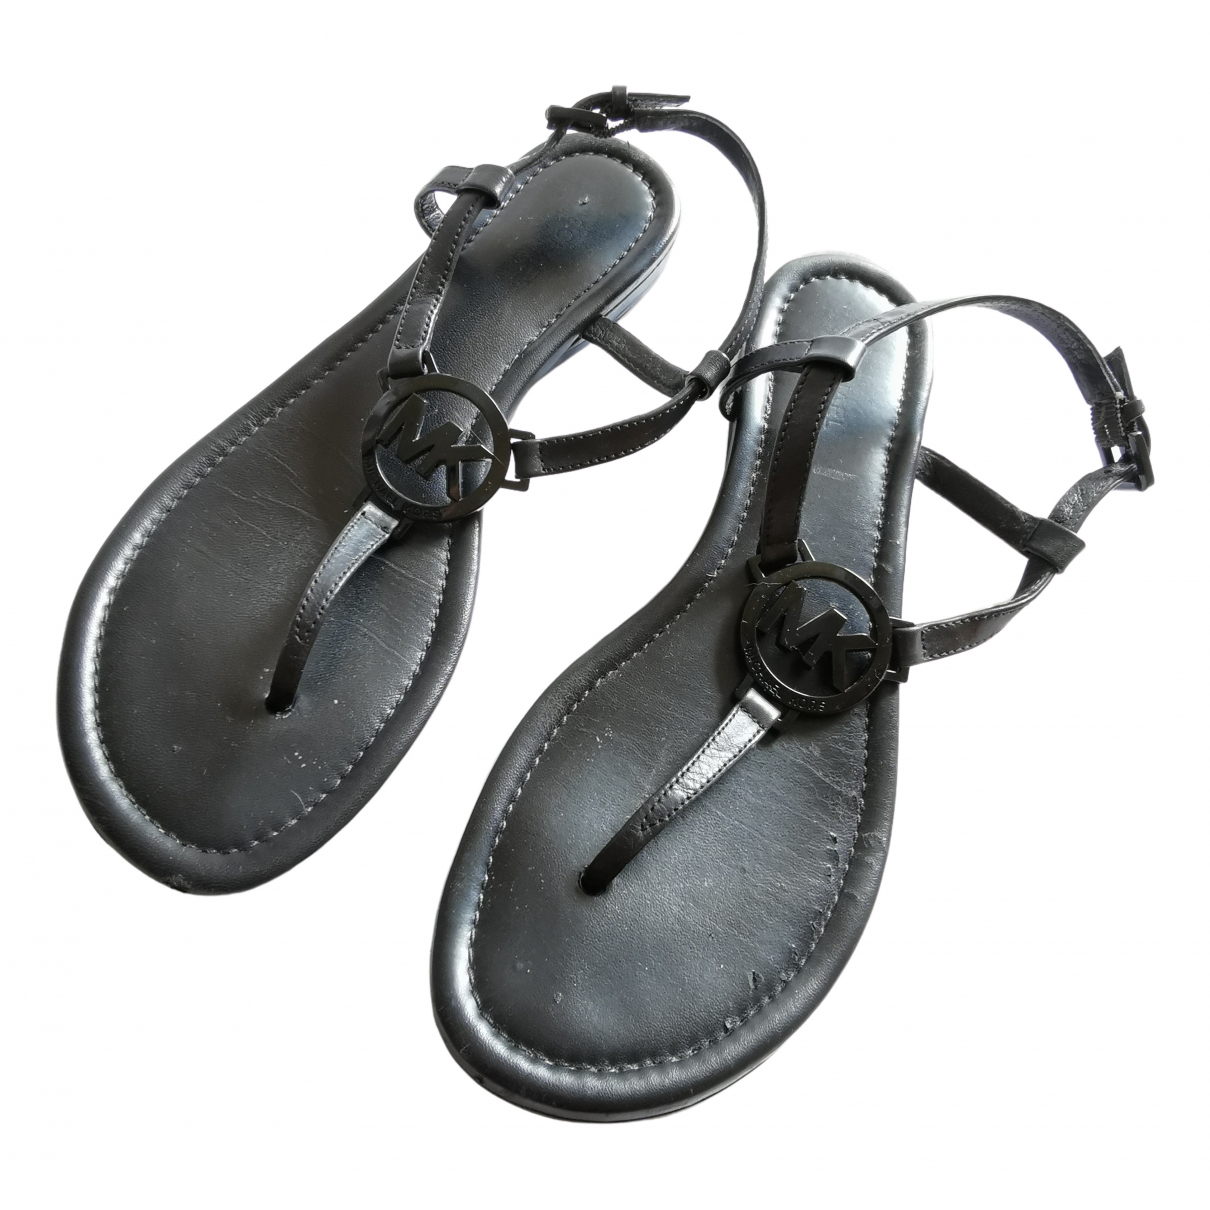 Michael Kors \N Black Leather Sandals for Women 6.5 US